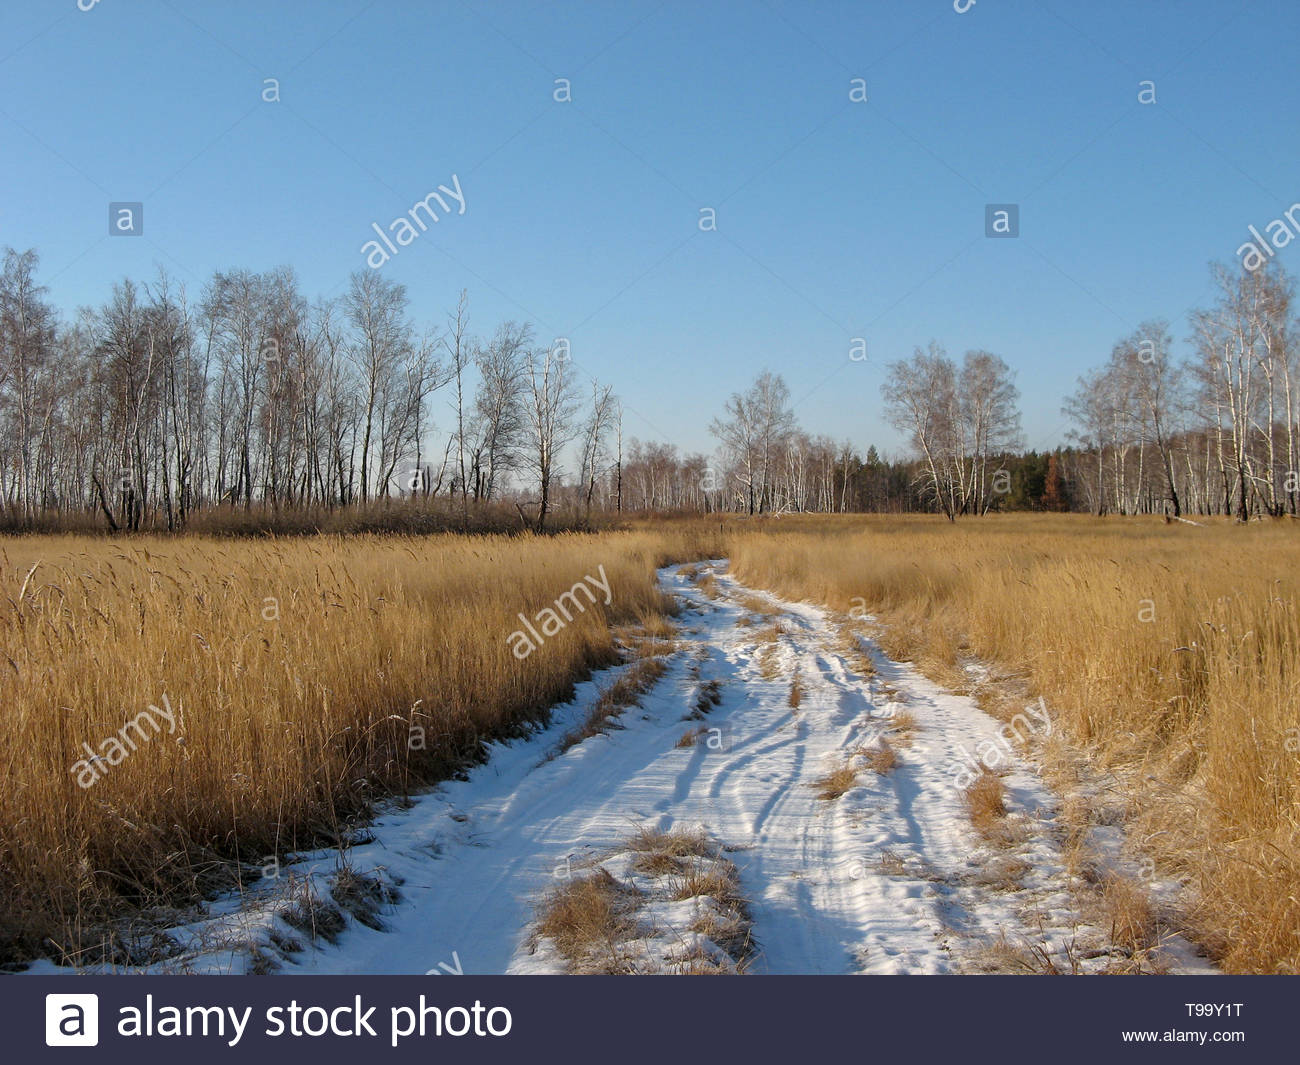 Snowy path from wheat field in Siberia, Russia. The snowy road in Siberian nature in January. Snowy path from the farm in sunny weather in winter. Blu - Stock Image